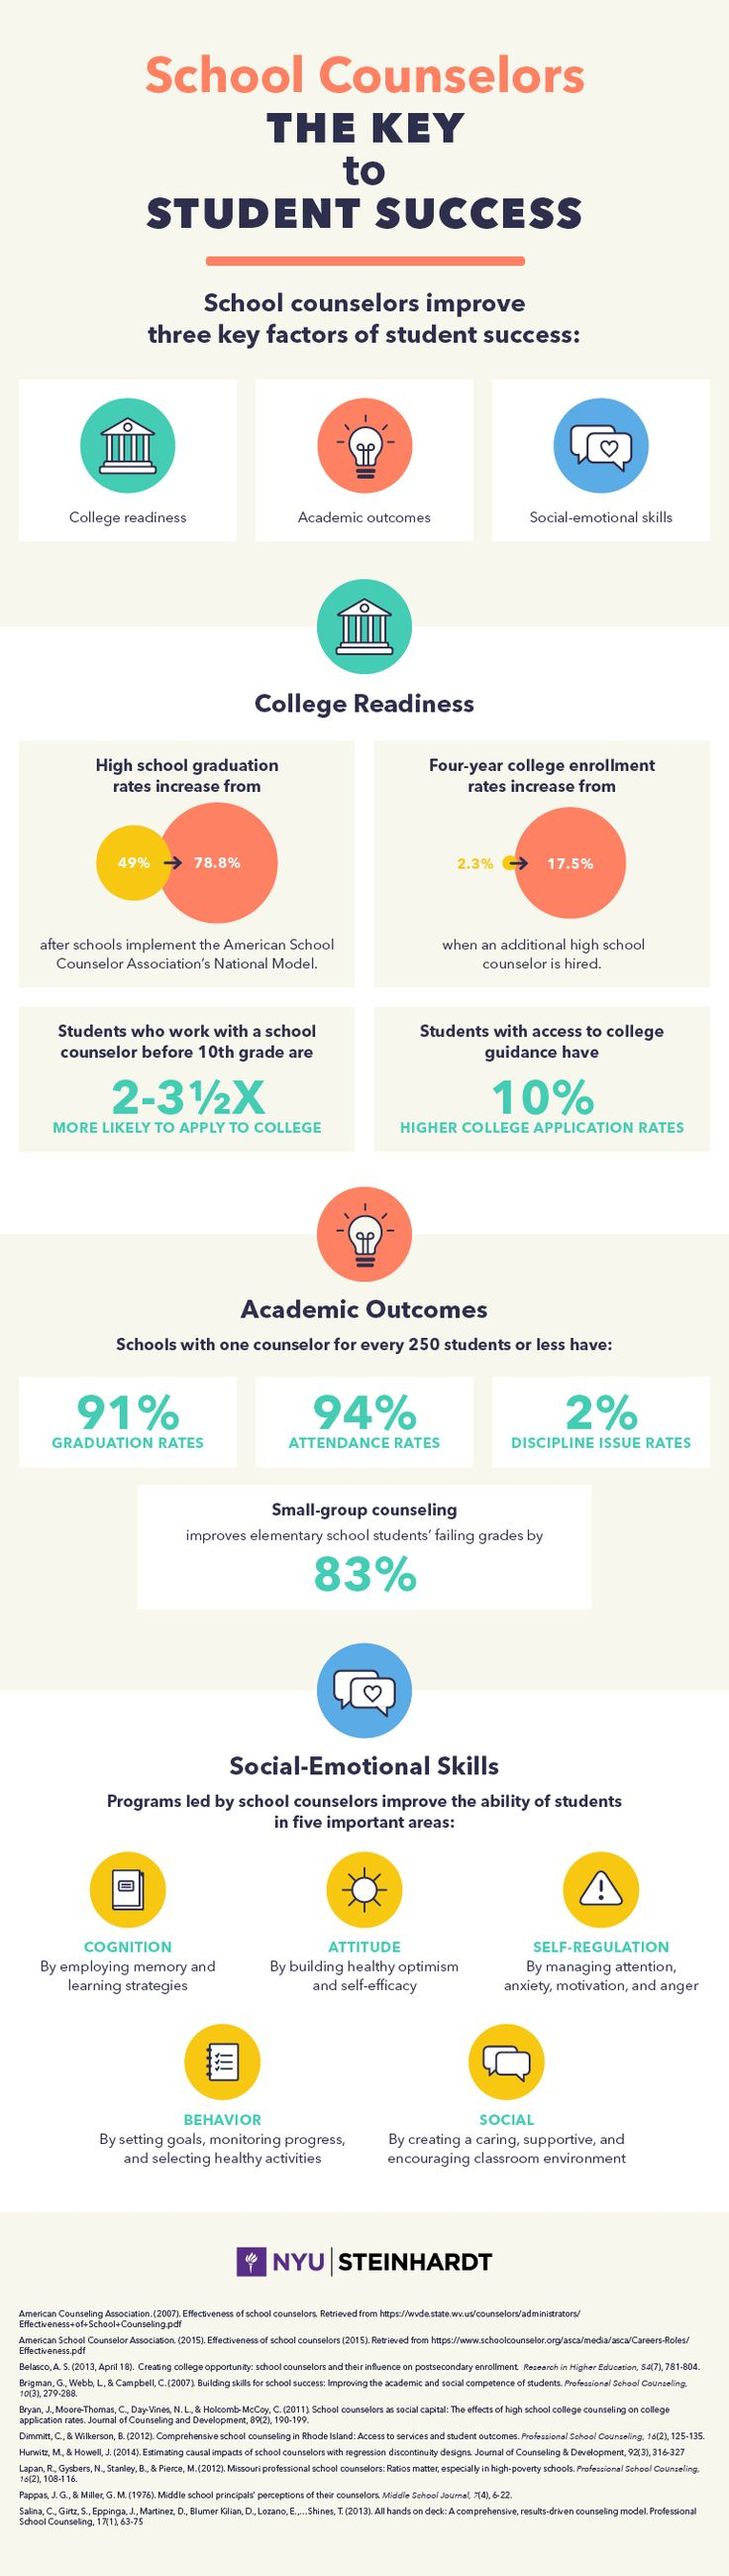 Wondering how to advocate for your program? Find several resources here that are filled with ideas, as well as a great graphic put together by NYU's school counseling program on why school c…